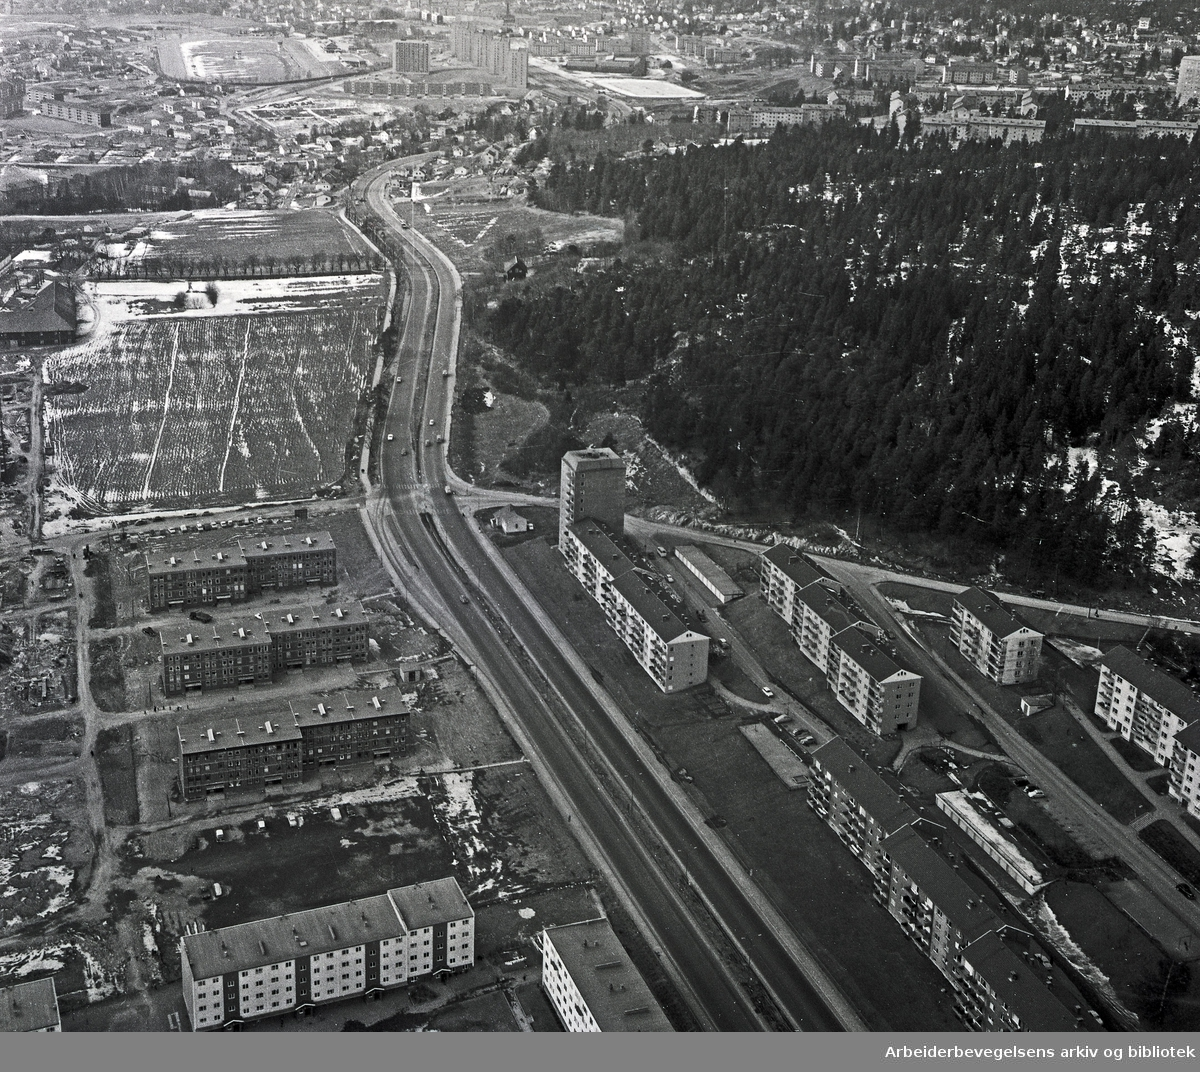 Flyfoto over Linderudsletta,.april 1964